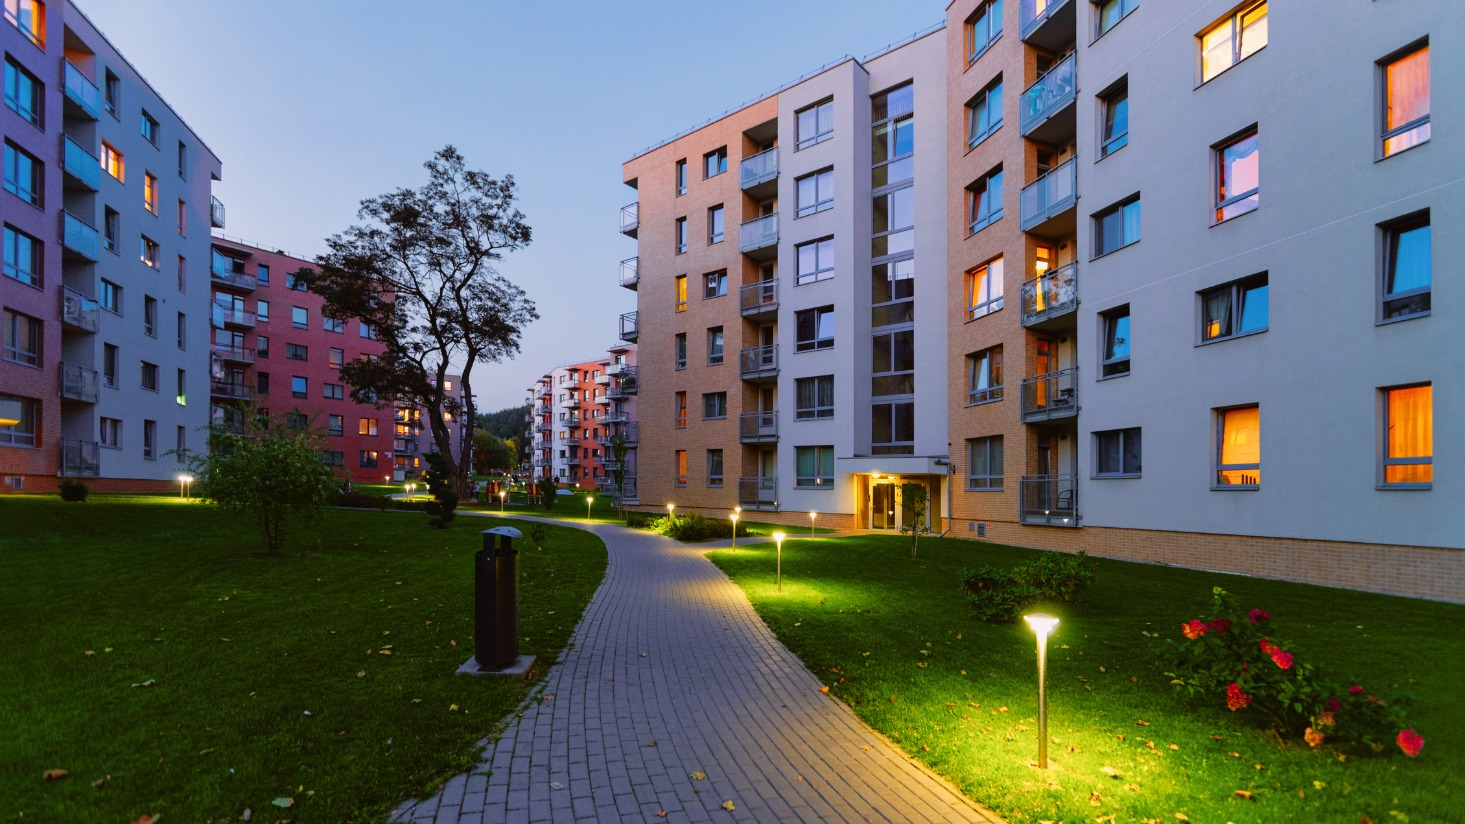 How to upgrade lighting for multifamily buildings